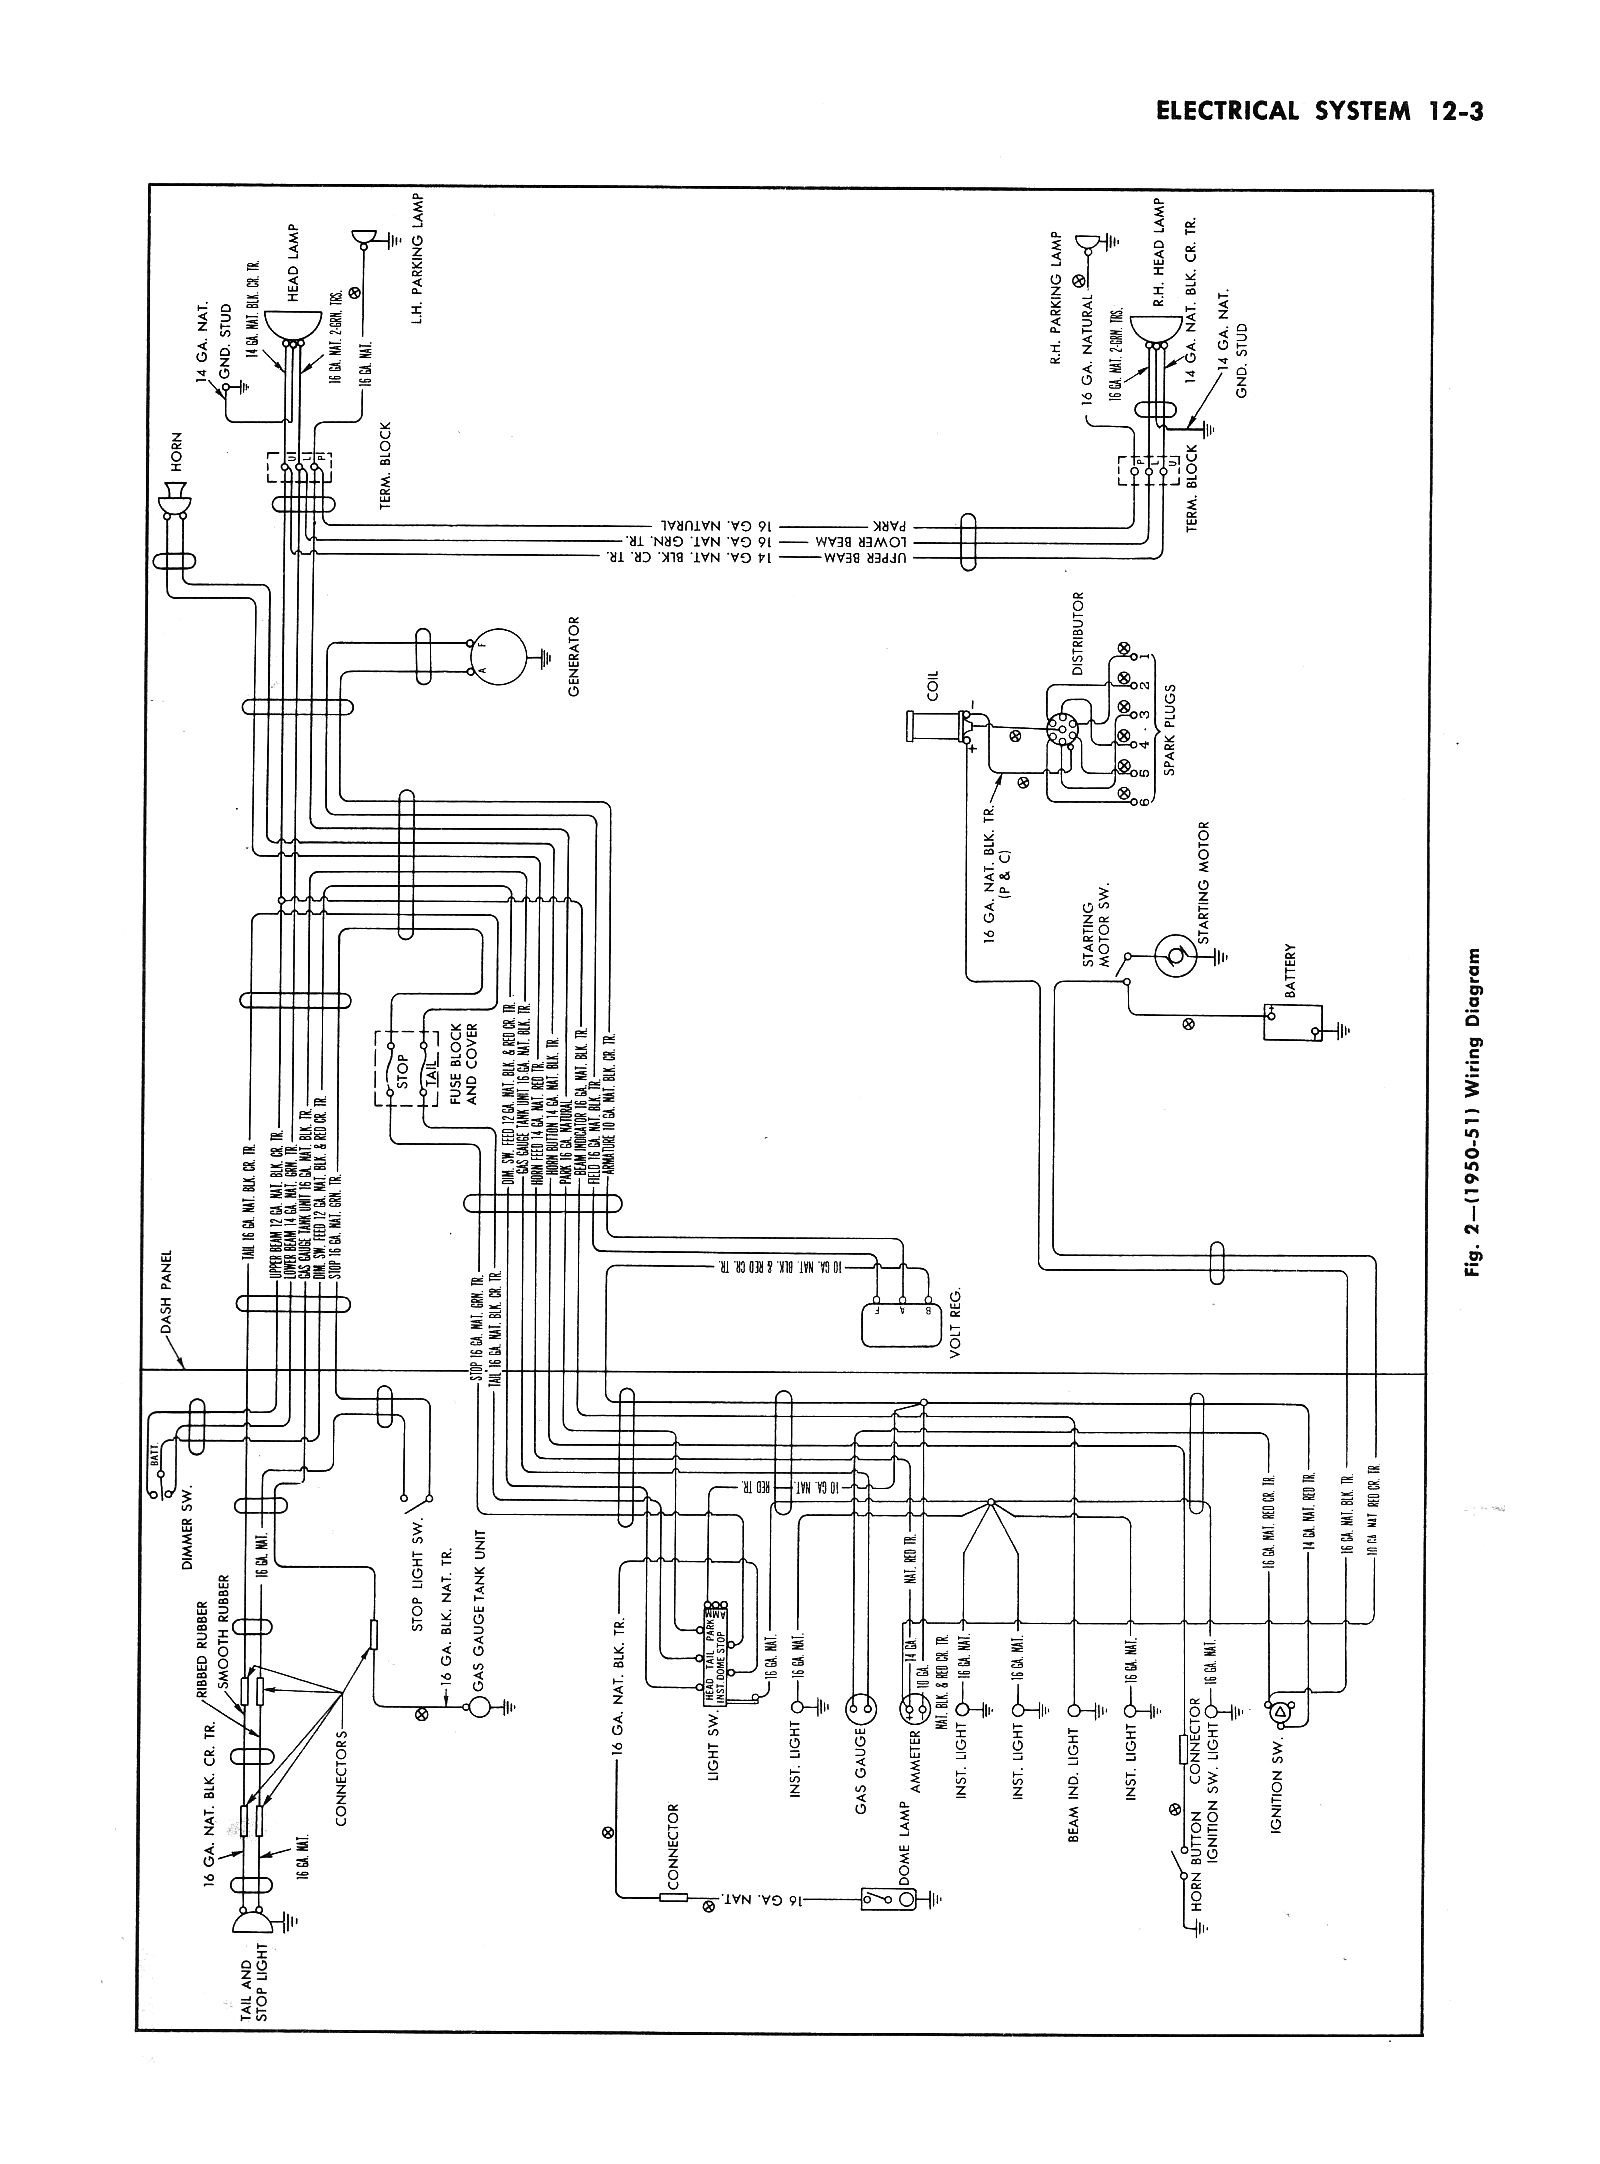 Amazing Chevy Wiring Diagrams Geral Blikvitt Wiring Digital Resources Geralblikvittorg